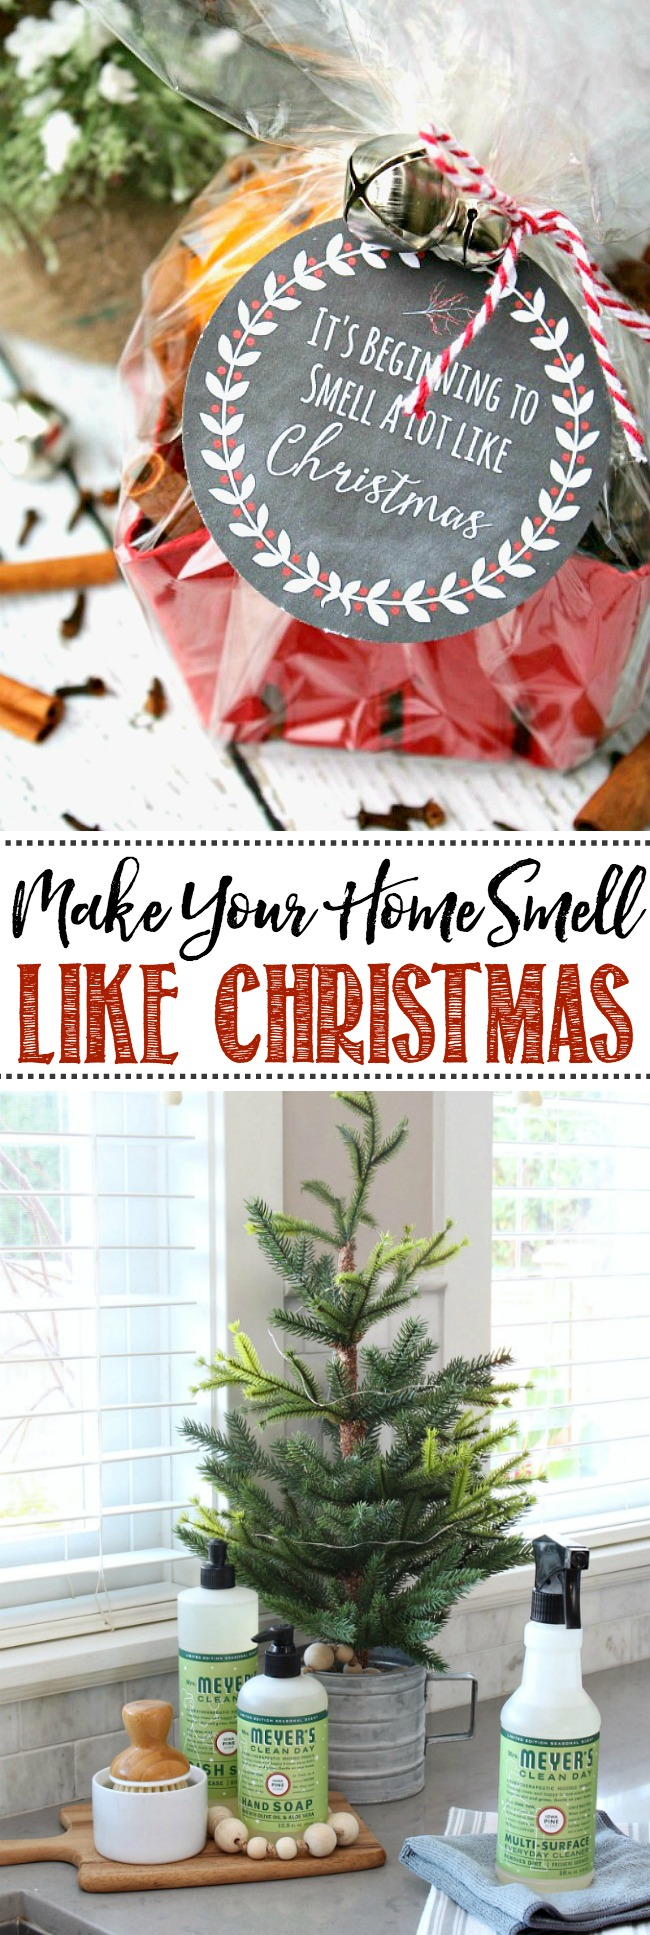 Easy ways to make your home smell like Christmas! Love this!